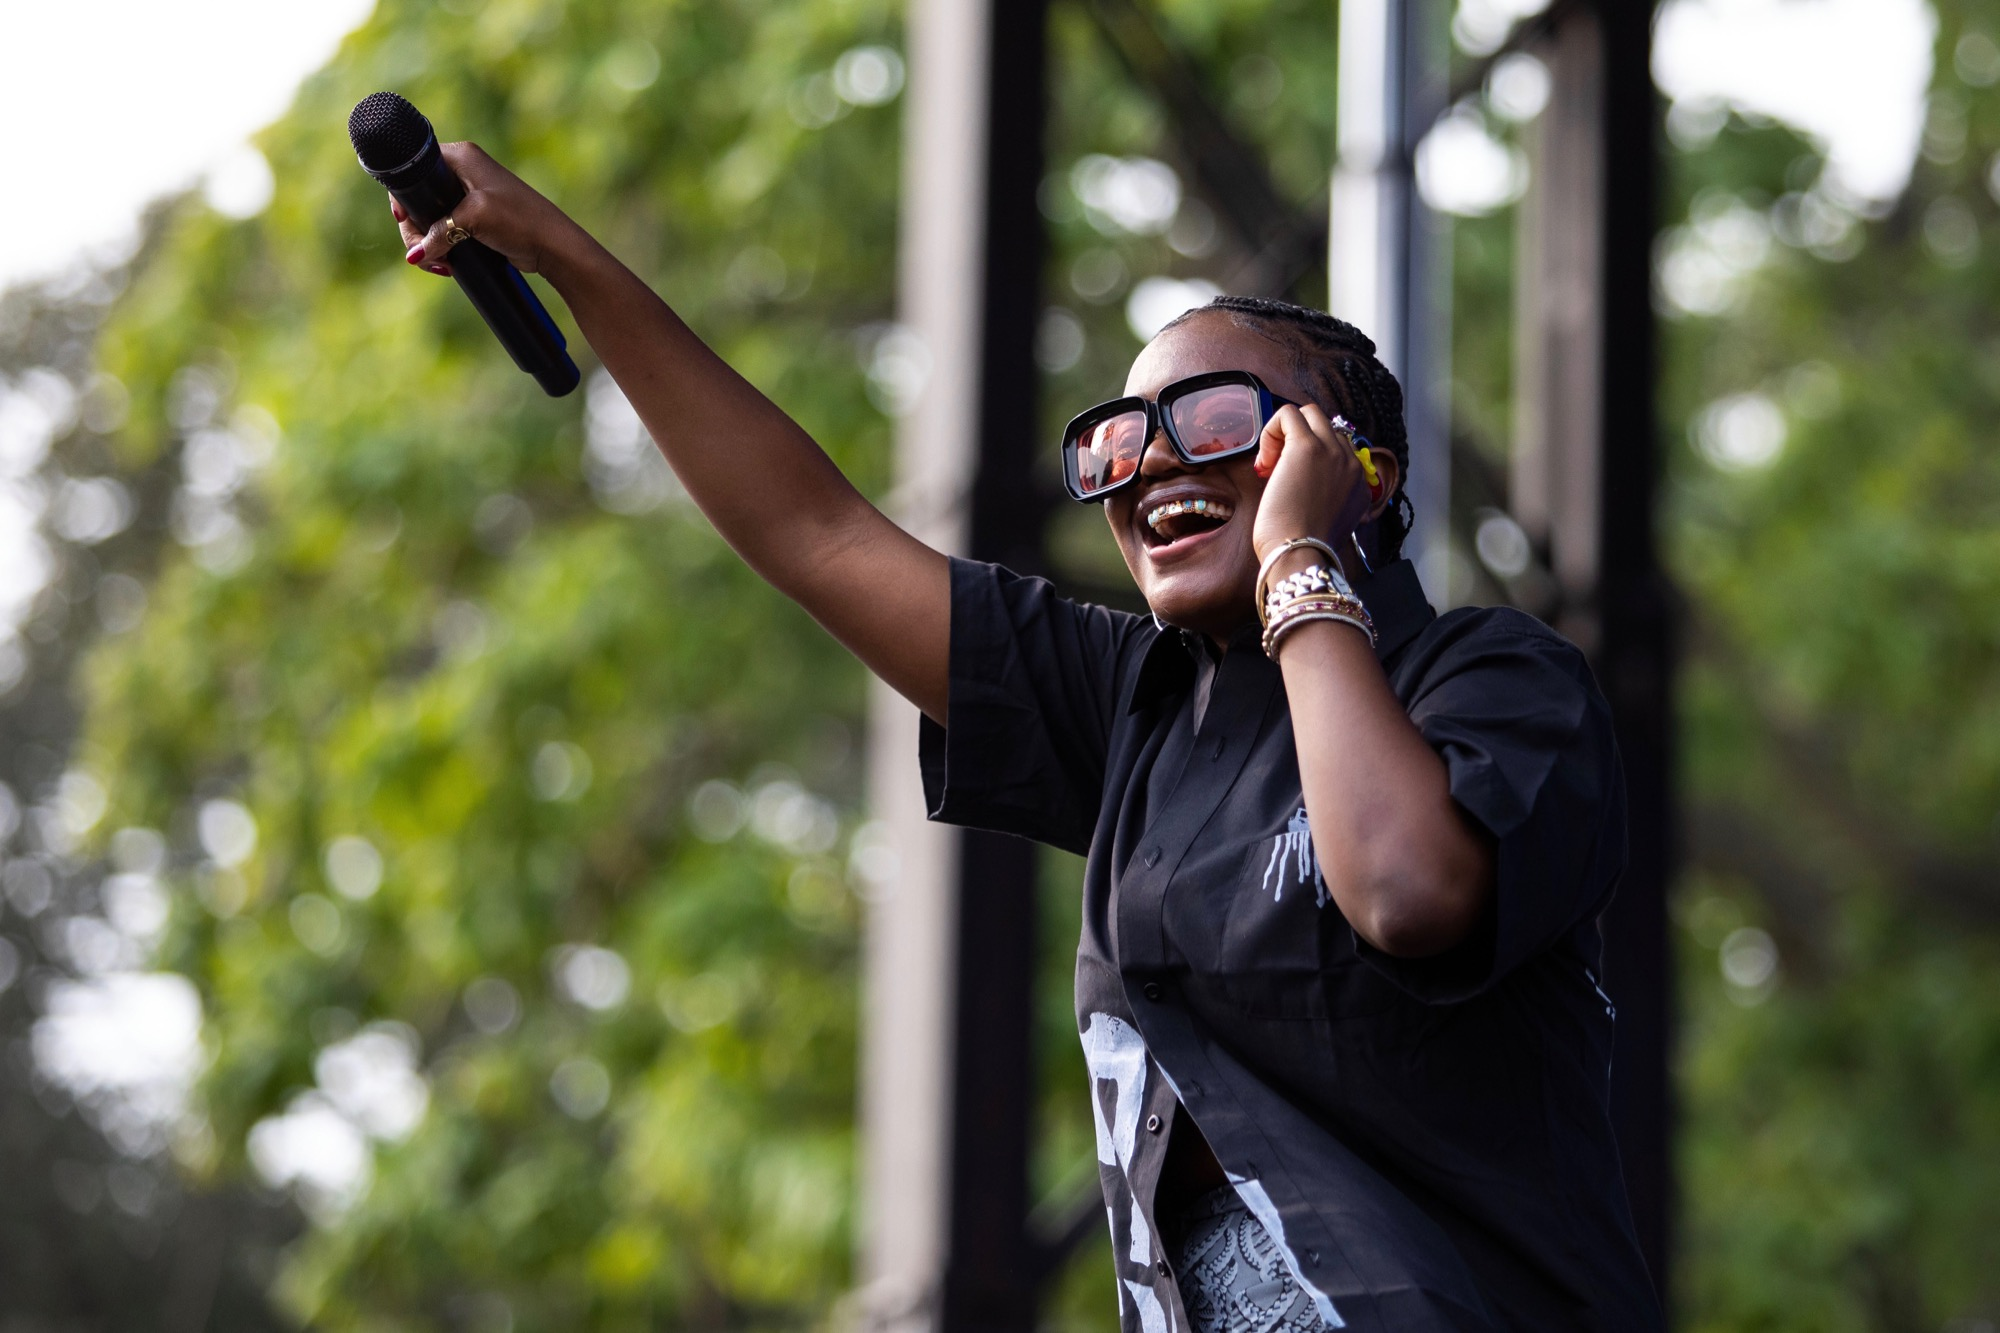 Amaarae performs at the Pitchfork Music Festival in Chicago on Sep. 11, 2021.